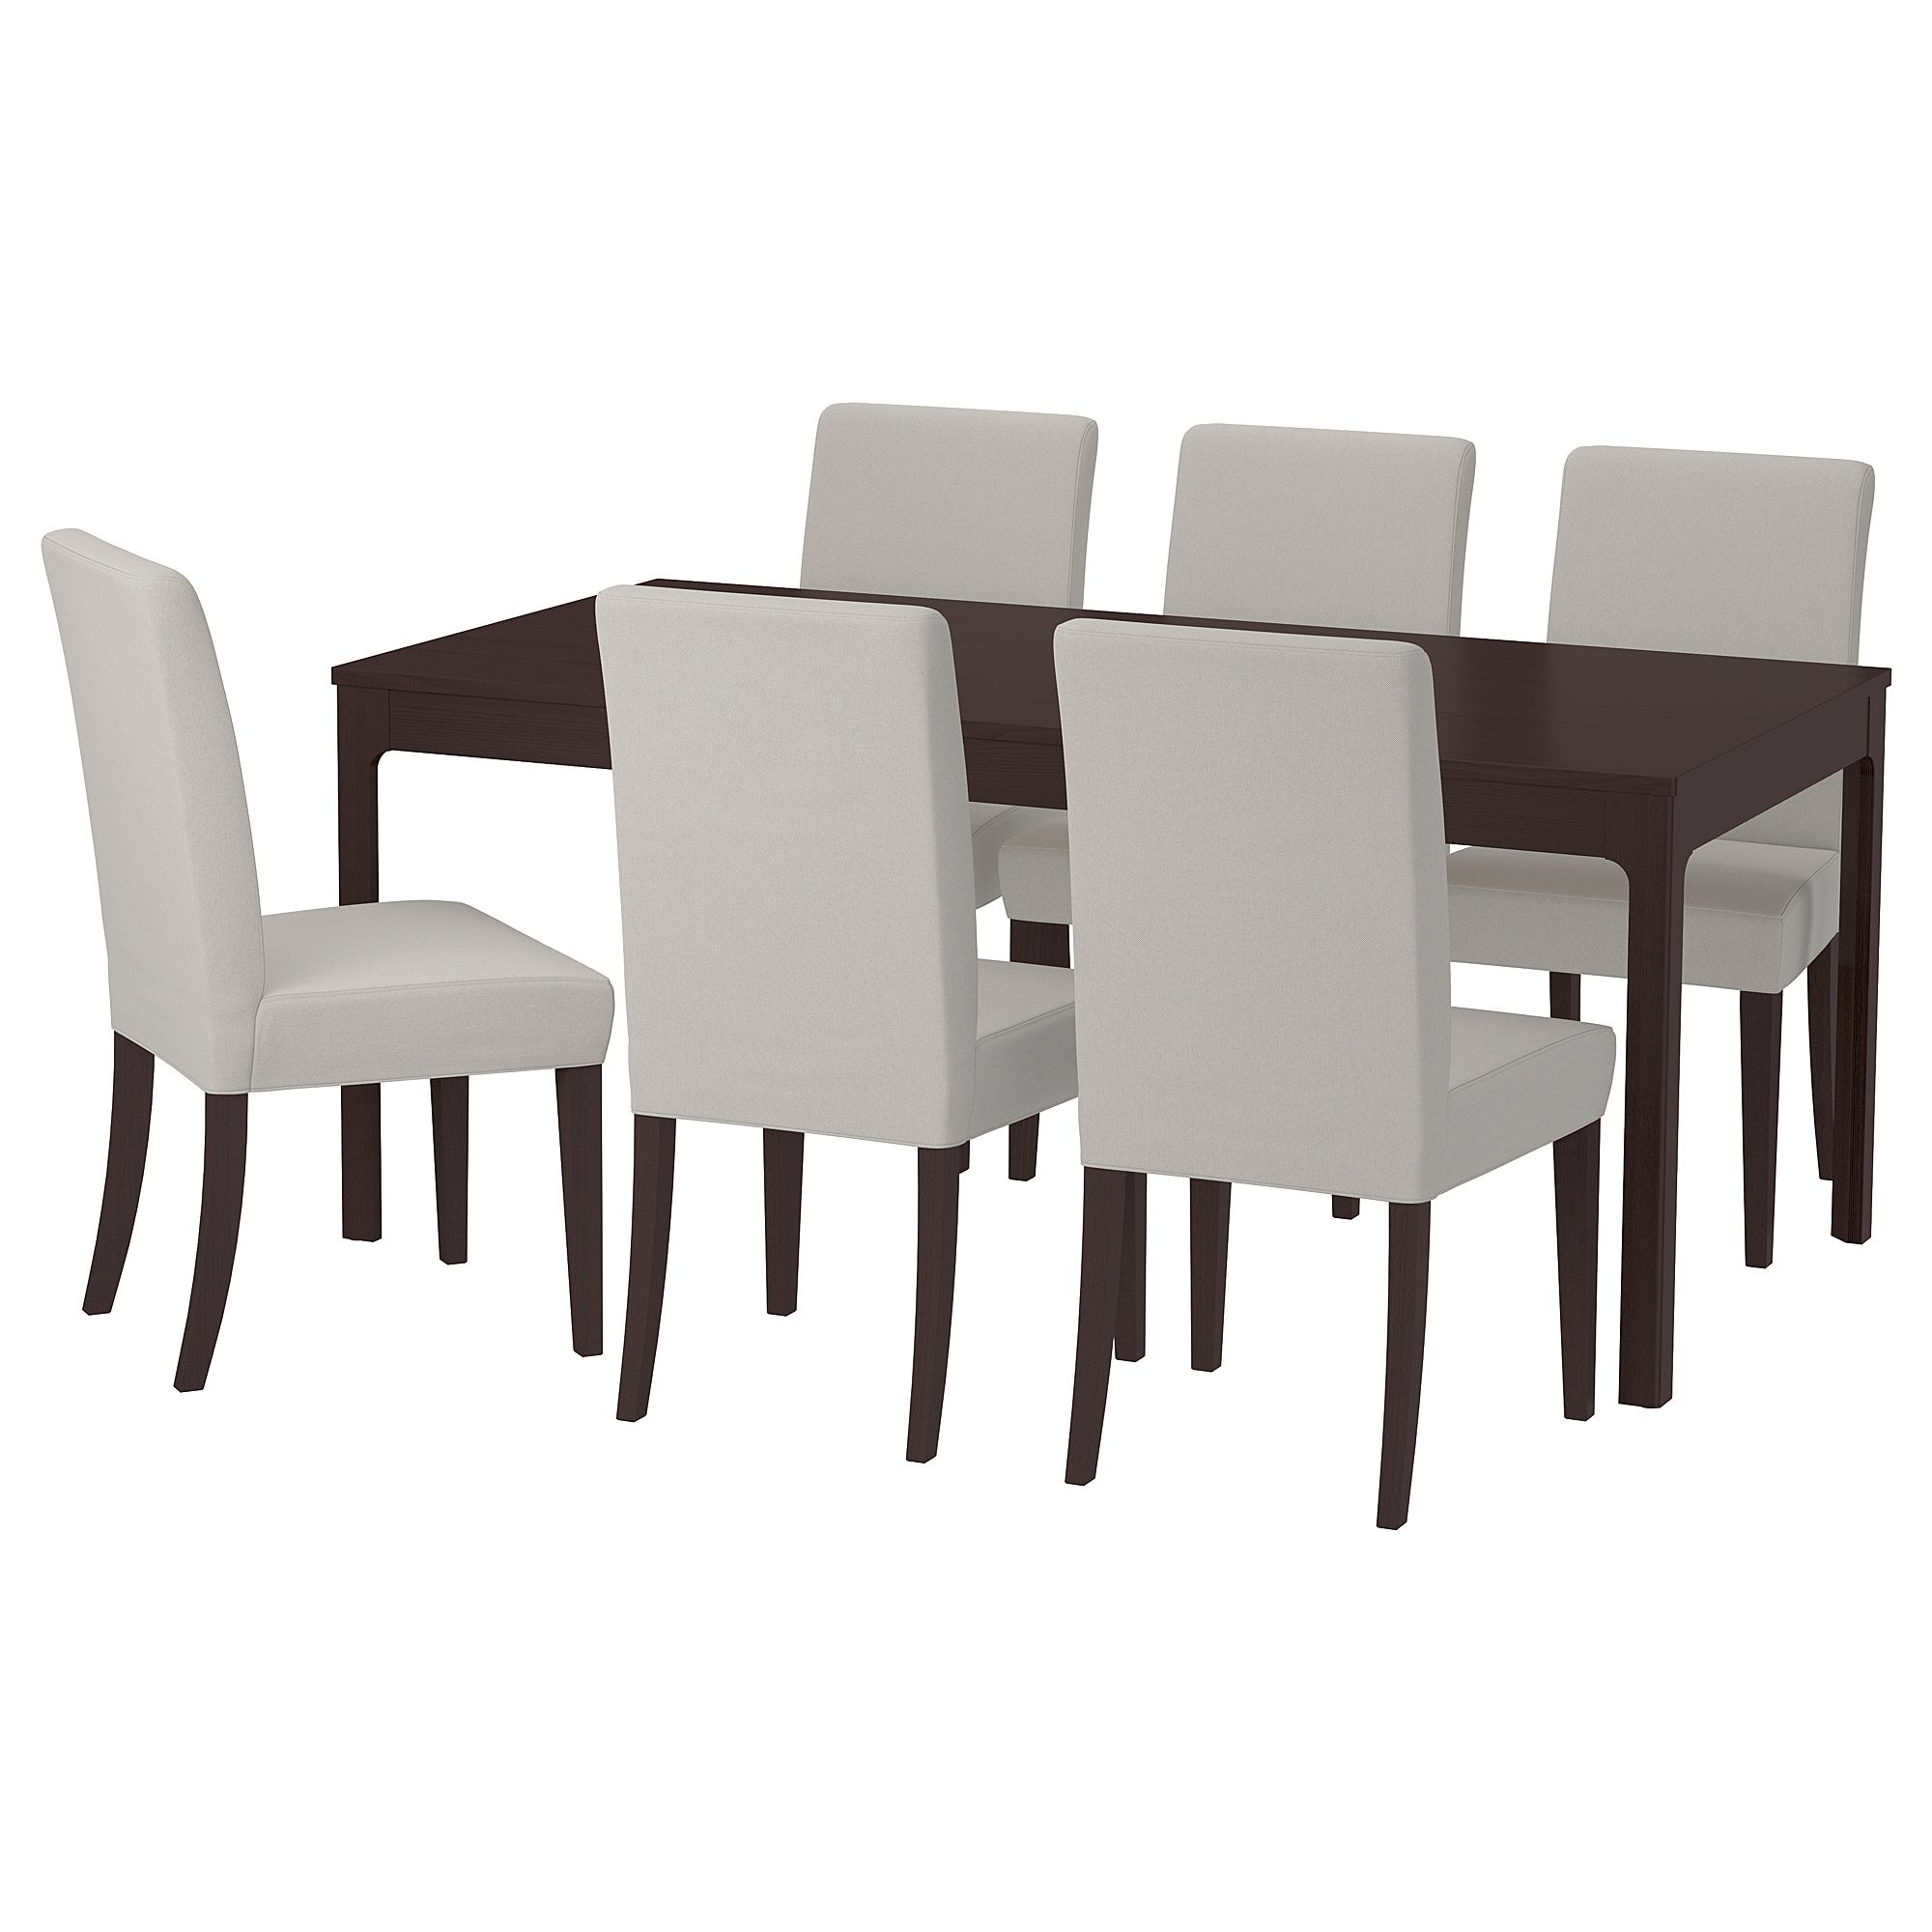 Ikea Ekedalen Henriksdal Table And 6 Chairs Dark Brown